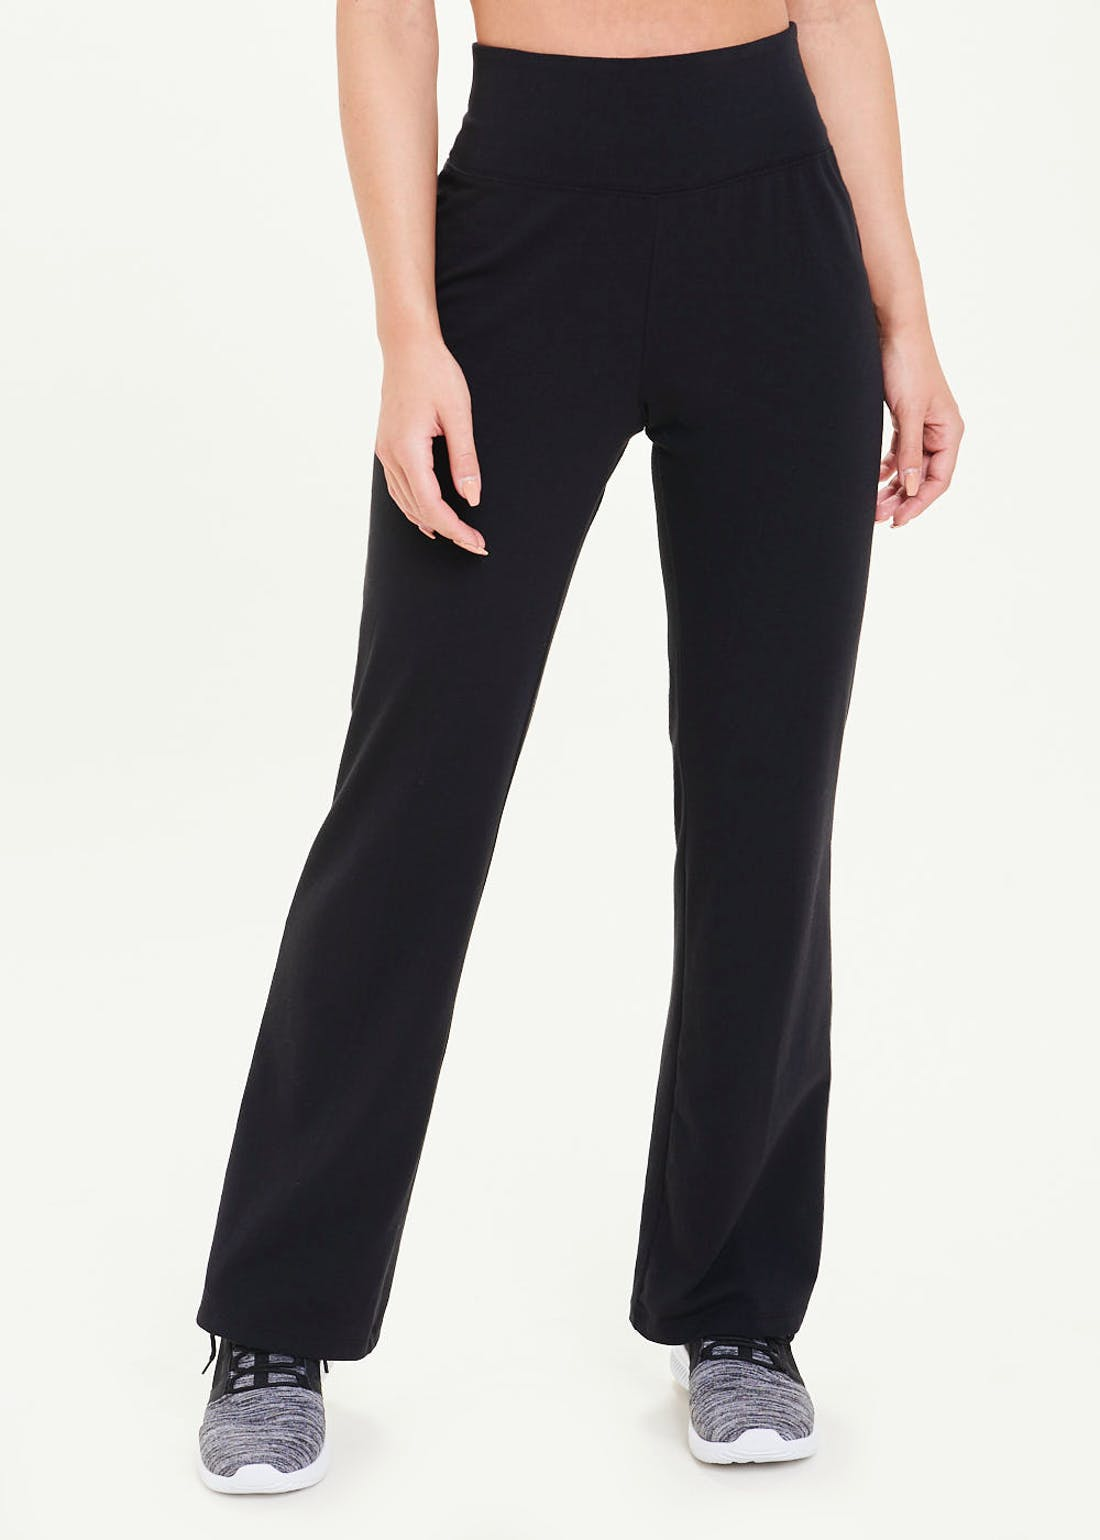 Souluxe Black Bootleg Gym Trousers